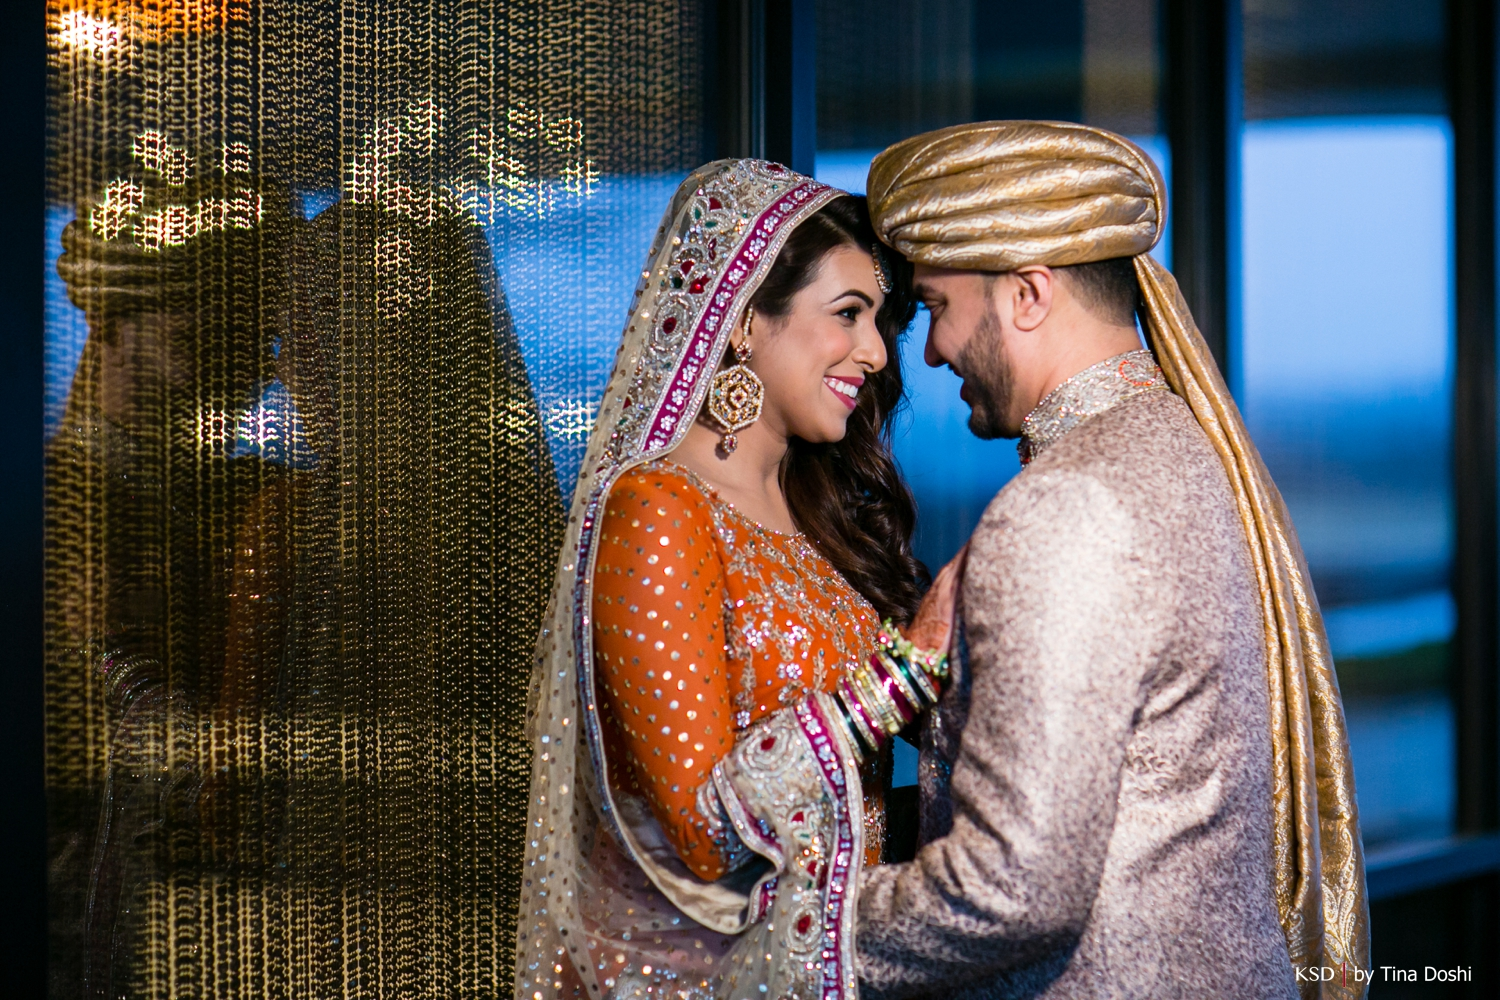 nj_south_asian_wedding_0025